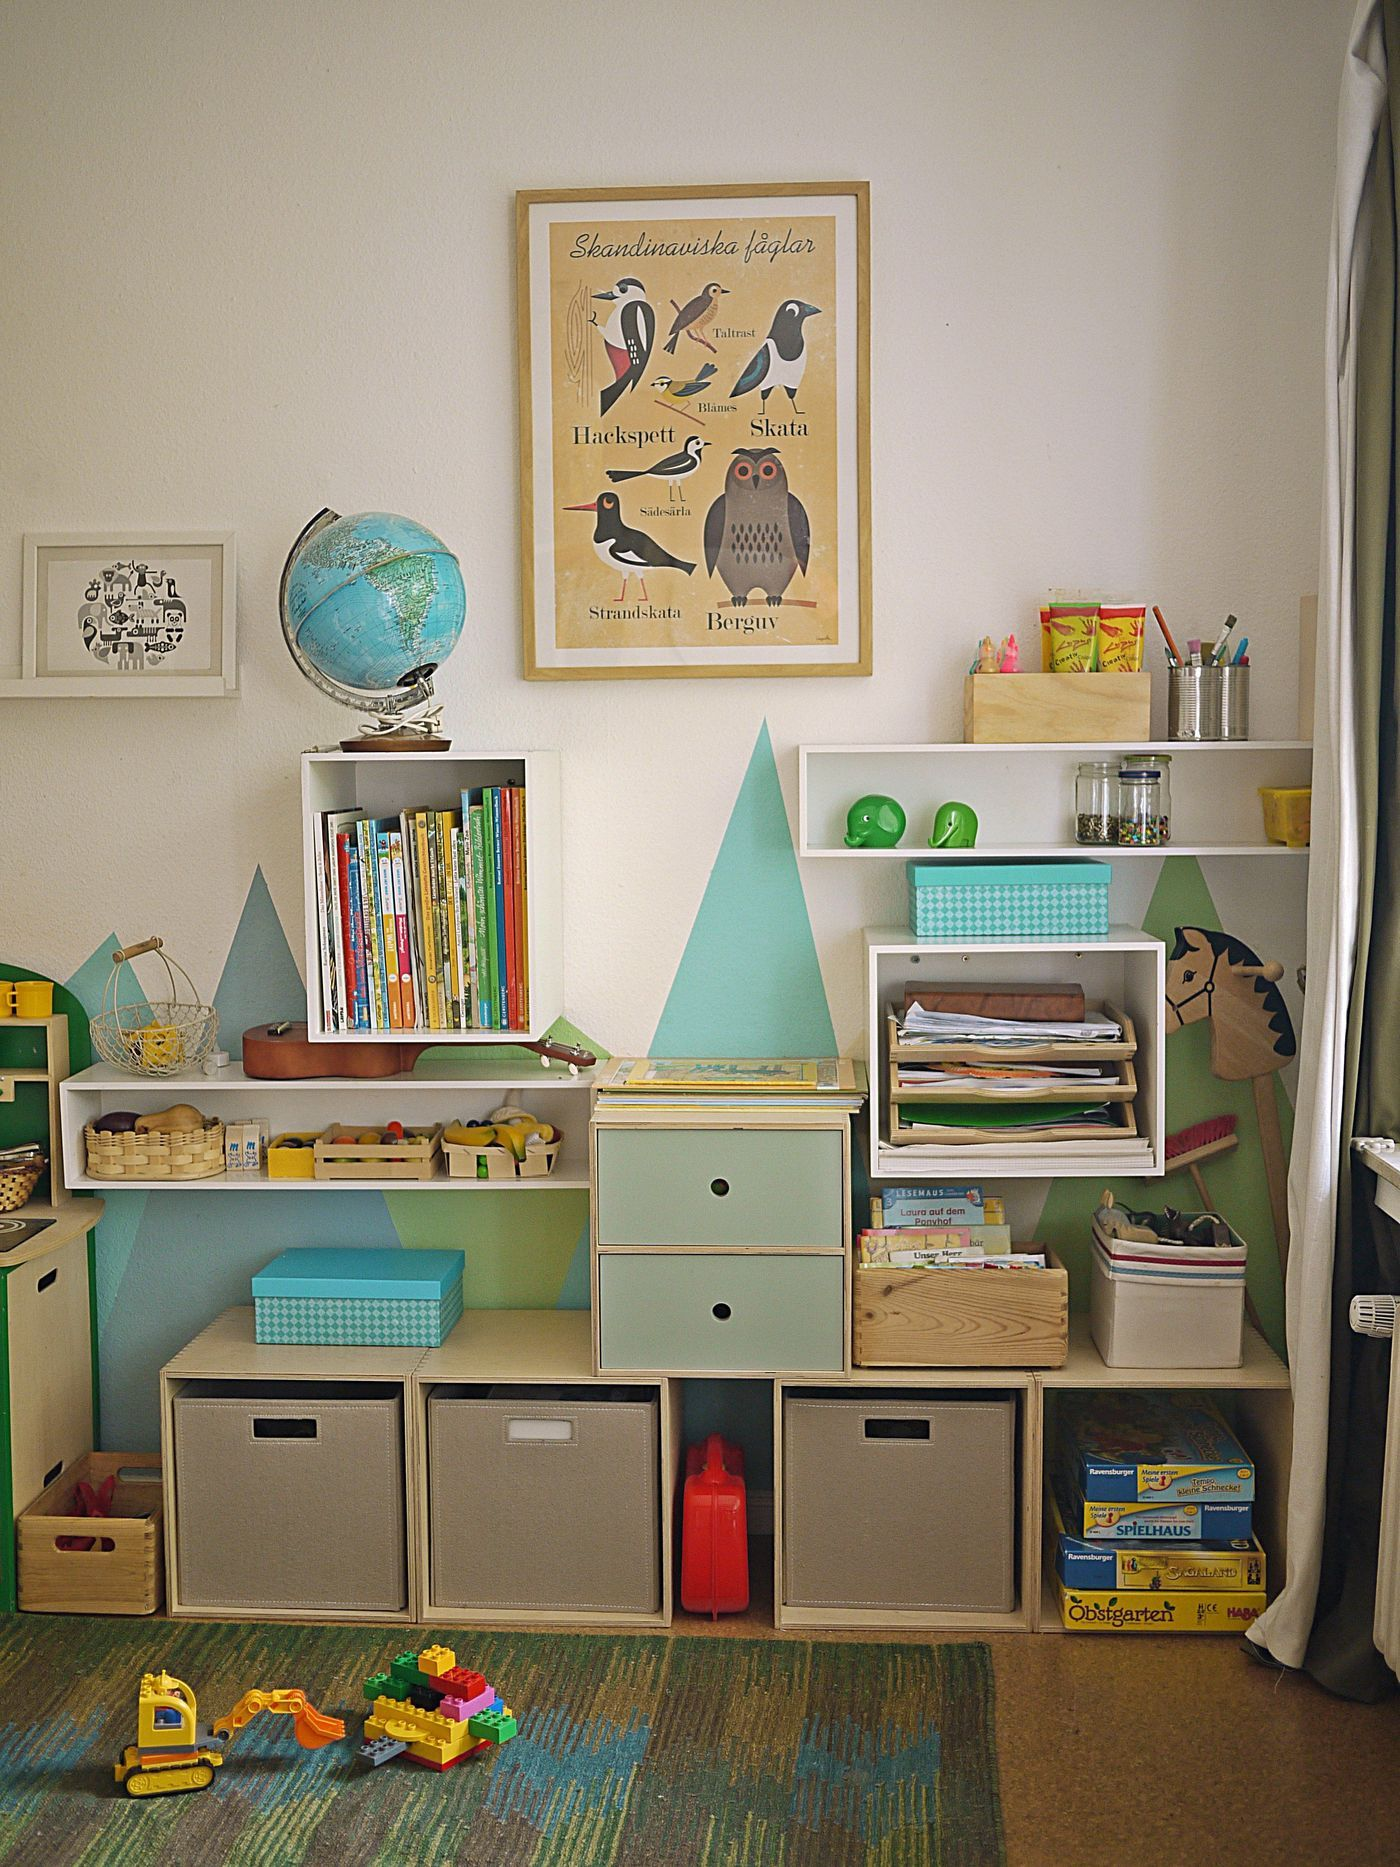 kinderzimmer aufbewahrung. Black Bedroom Furniture Sets. Home Design Ideas